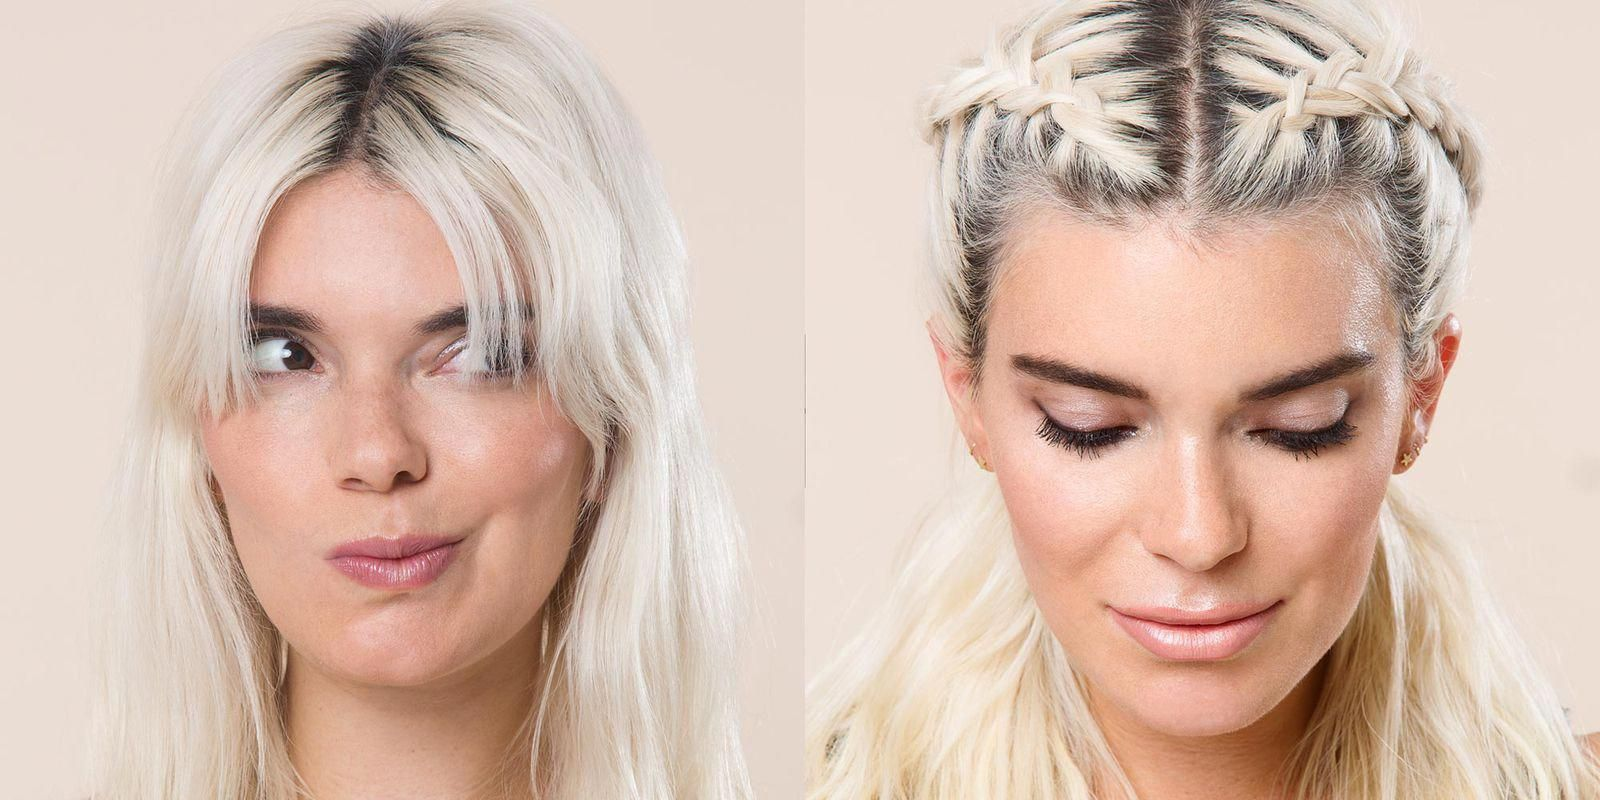 How To Hide Your Bangs With A Braid Hair Styles Long Hair Styles Hair Hacks